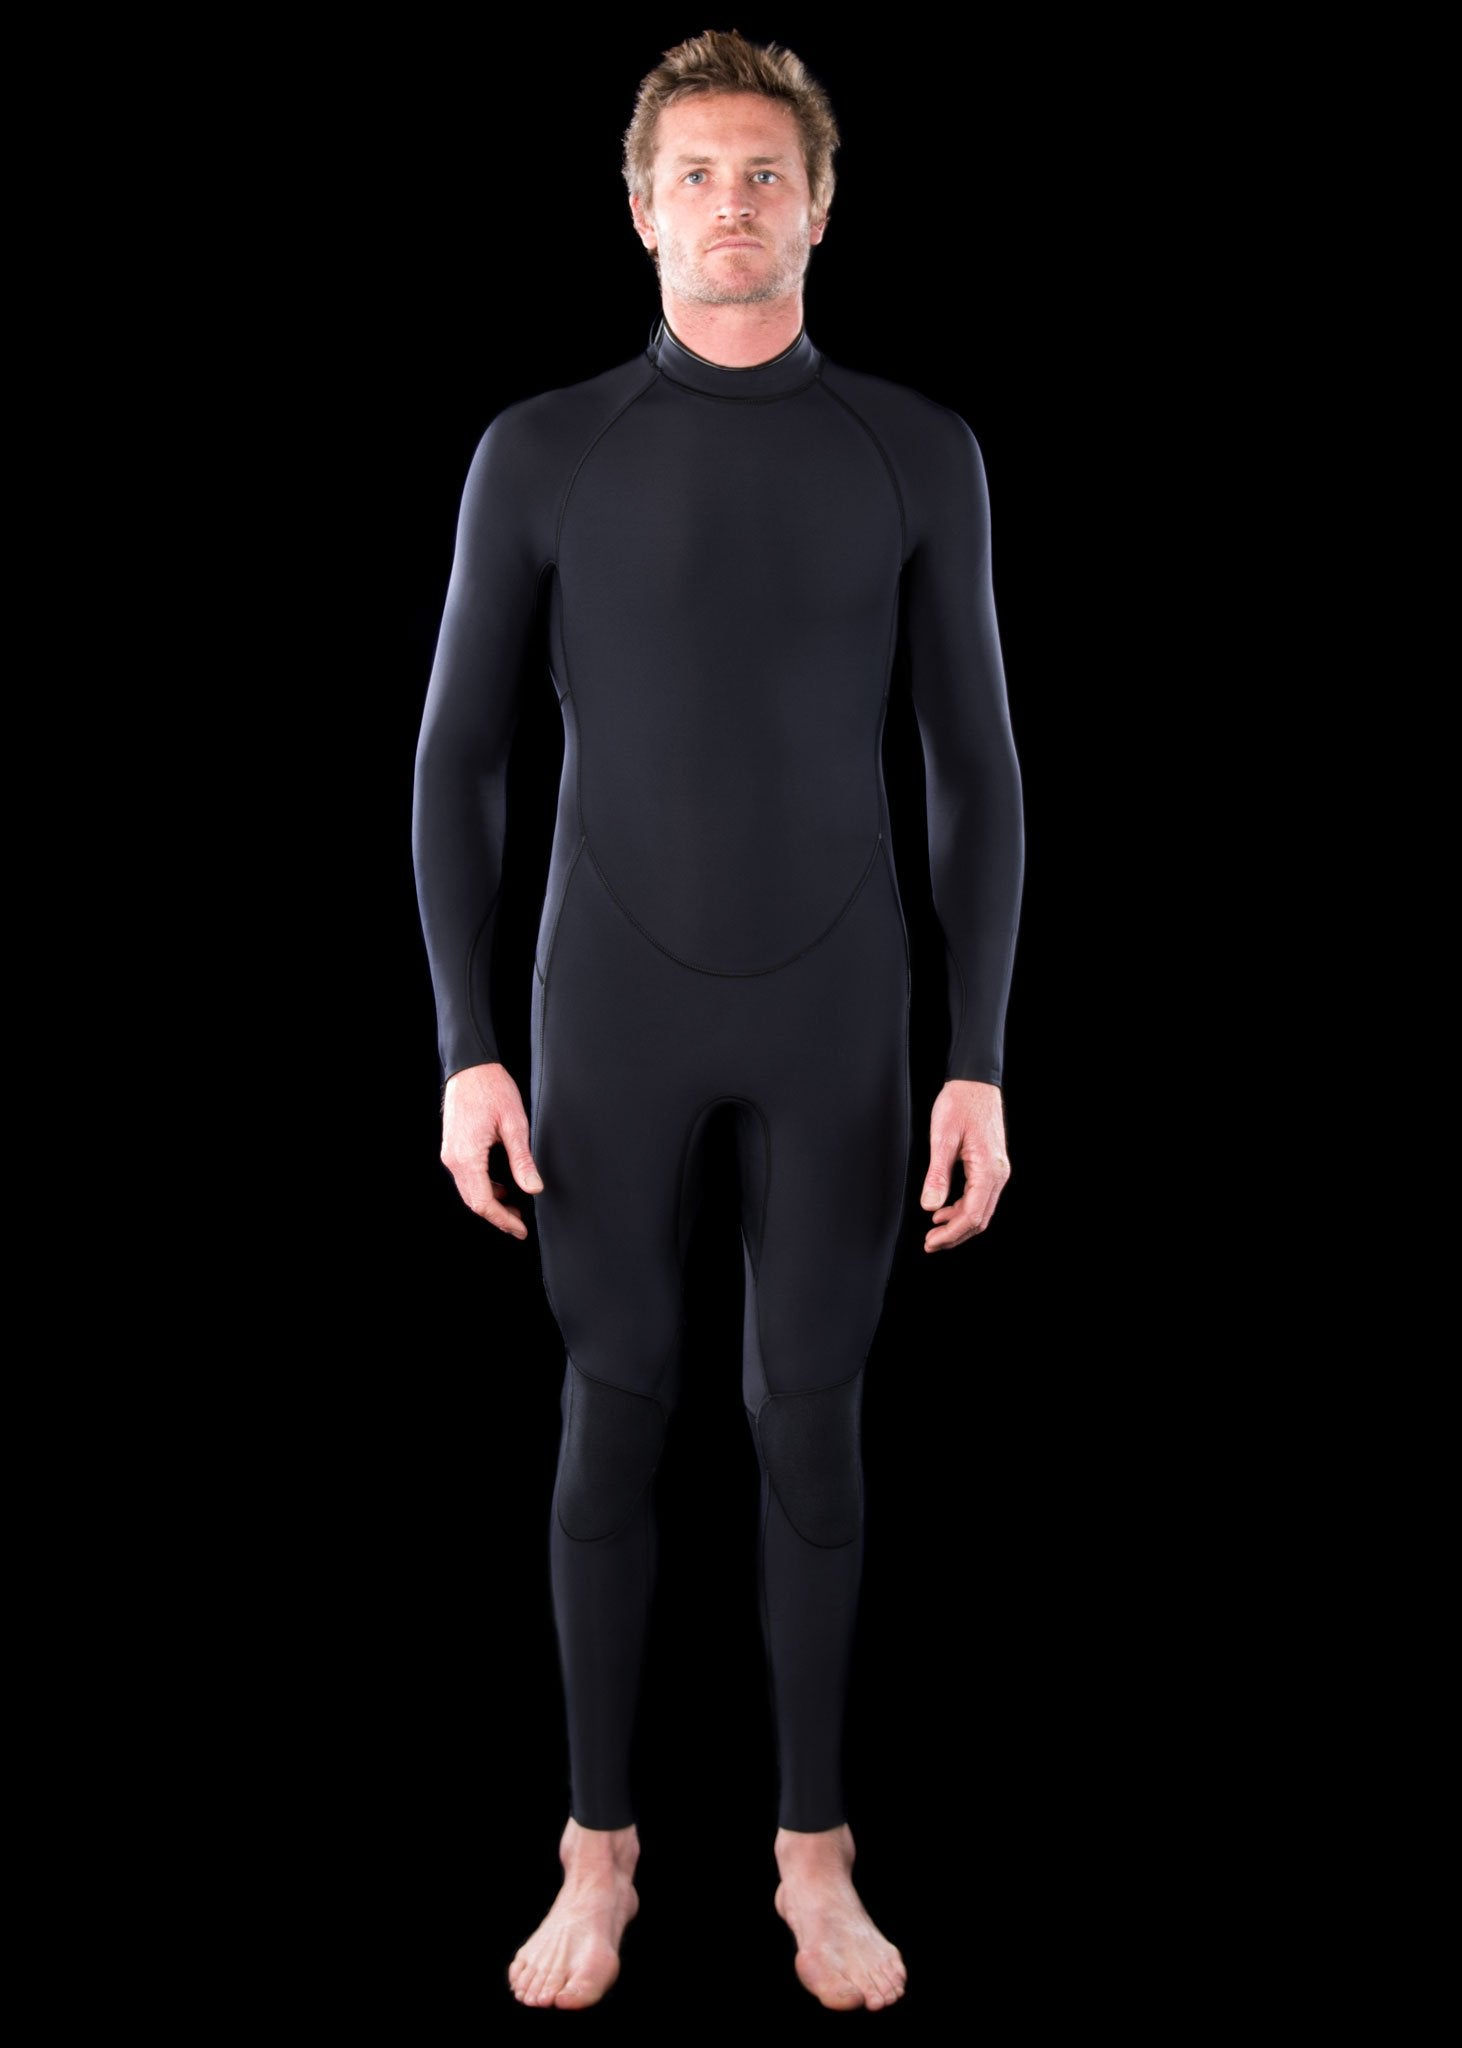 needessentials wetsuits premium Mens 4/3 Backzip Wetsuit